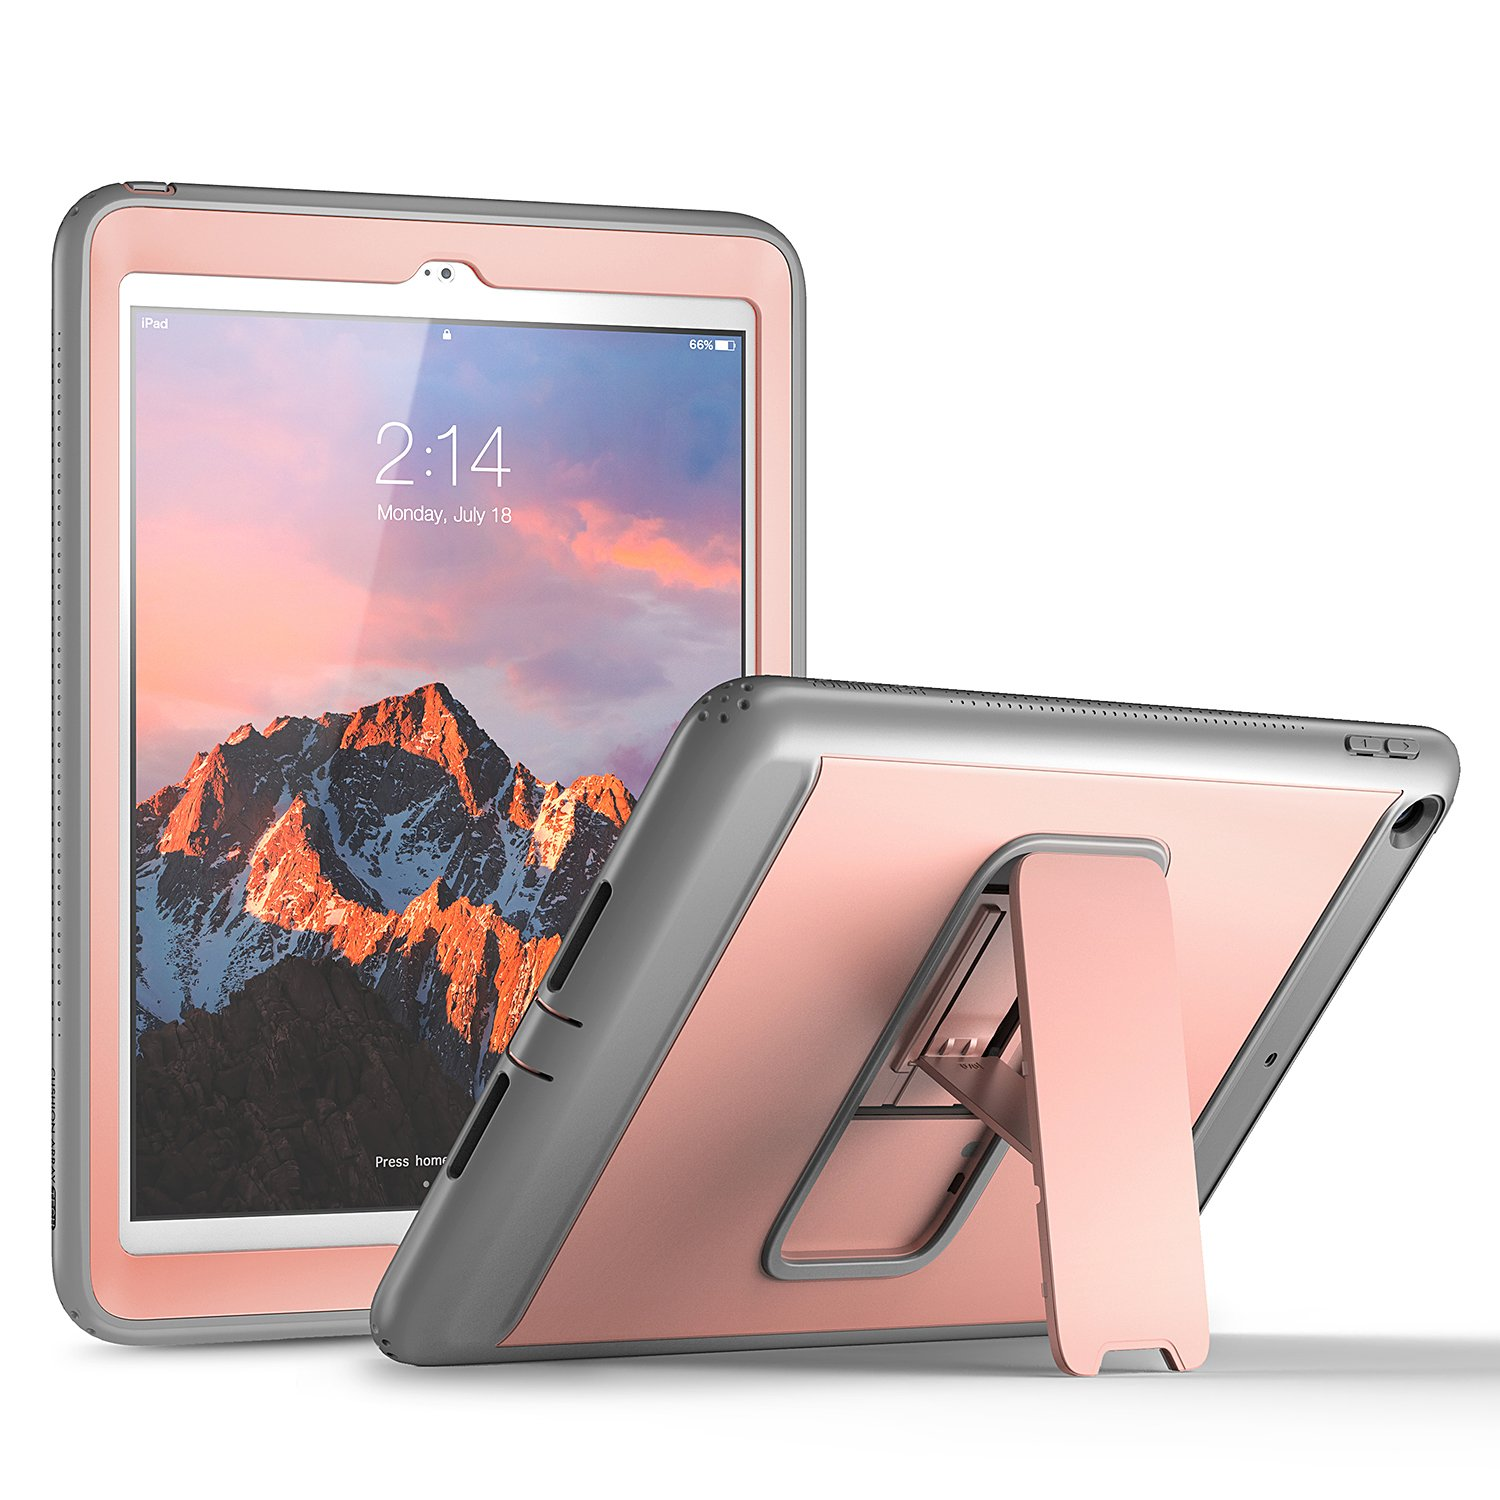 New iPad 2017 9.7 inch Case, YOUMAKER Heavy Duty Kickstand Shockproof Protective Case Cover for Apple New iPad 9.7 inch (2017 Version) with Built-in Screen Protector (Rose Gold/Gray) by YOUMAKER